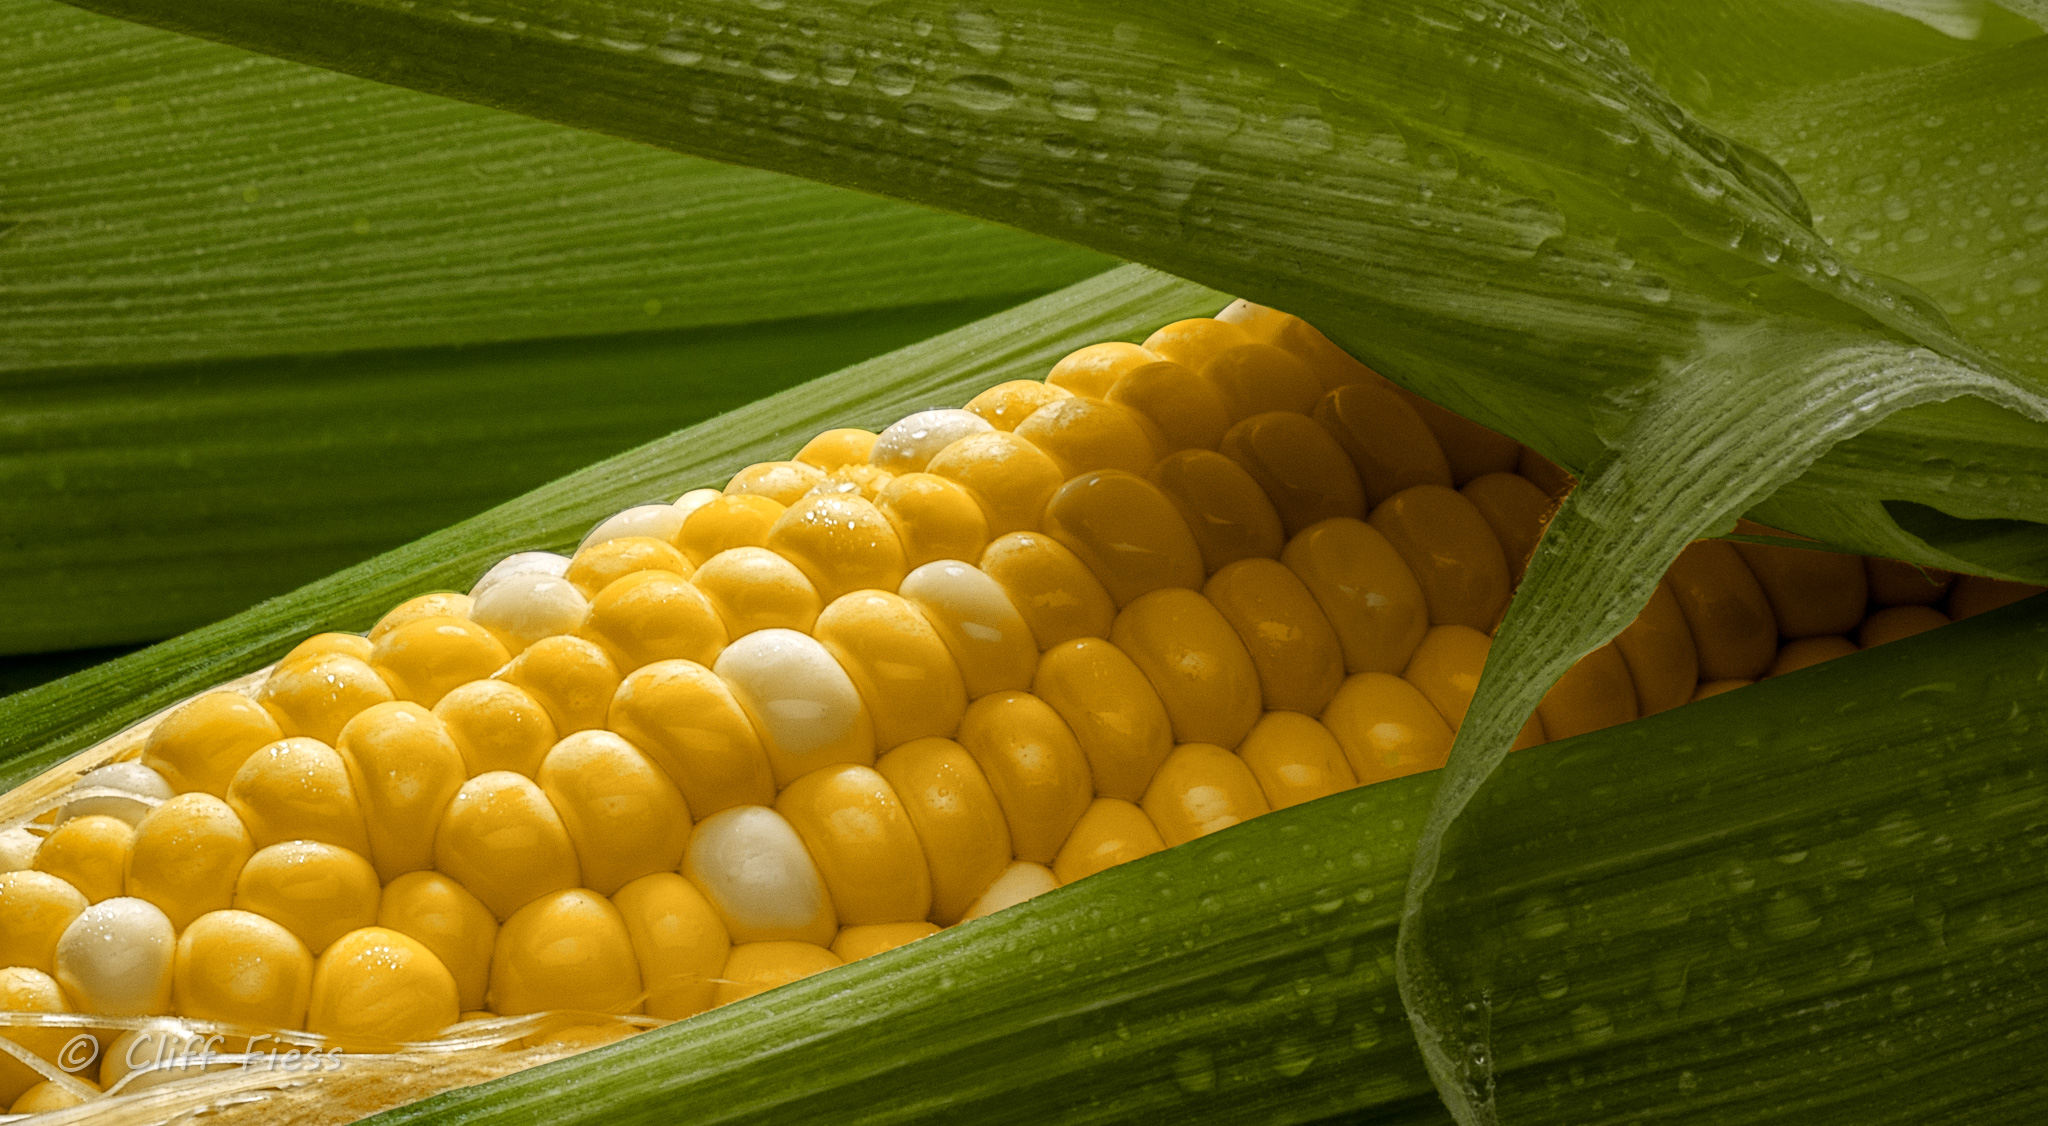 I-love-fresh-corn-on-the-cob.jpg